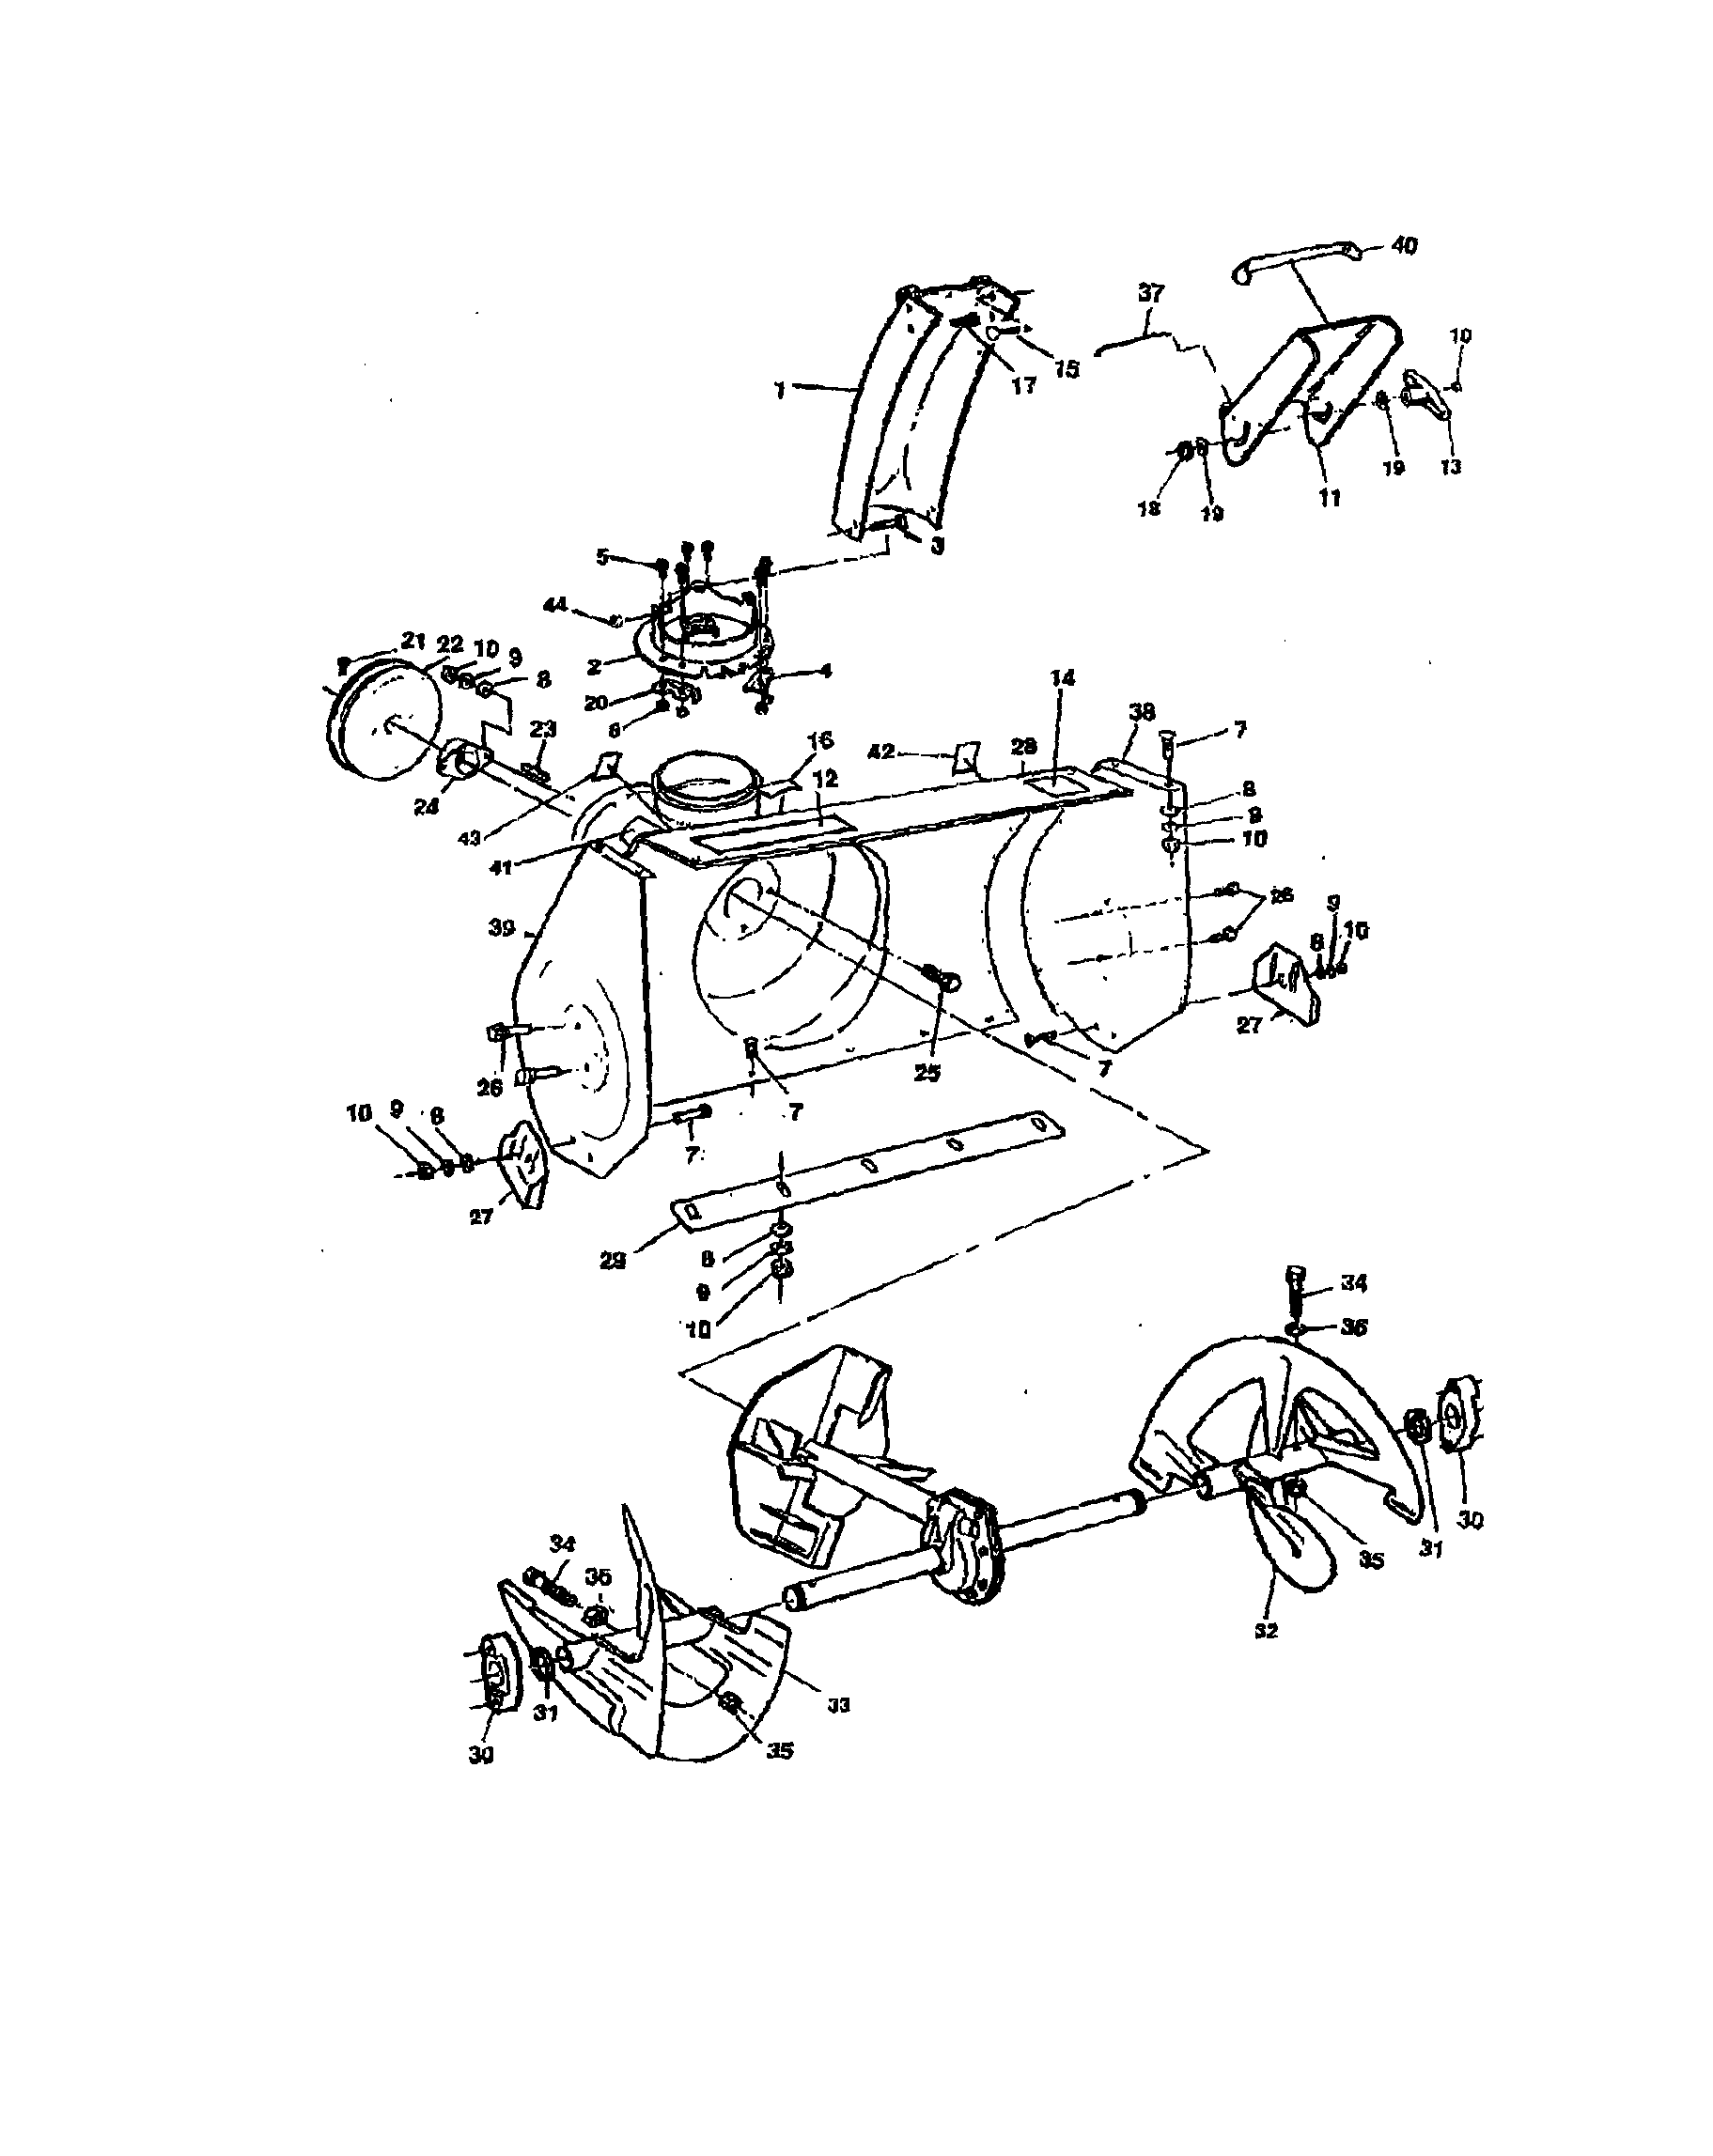 Sears craftsman snowblower repair manual